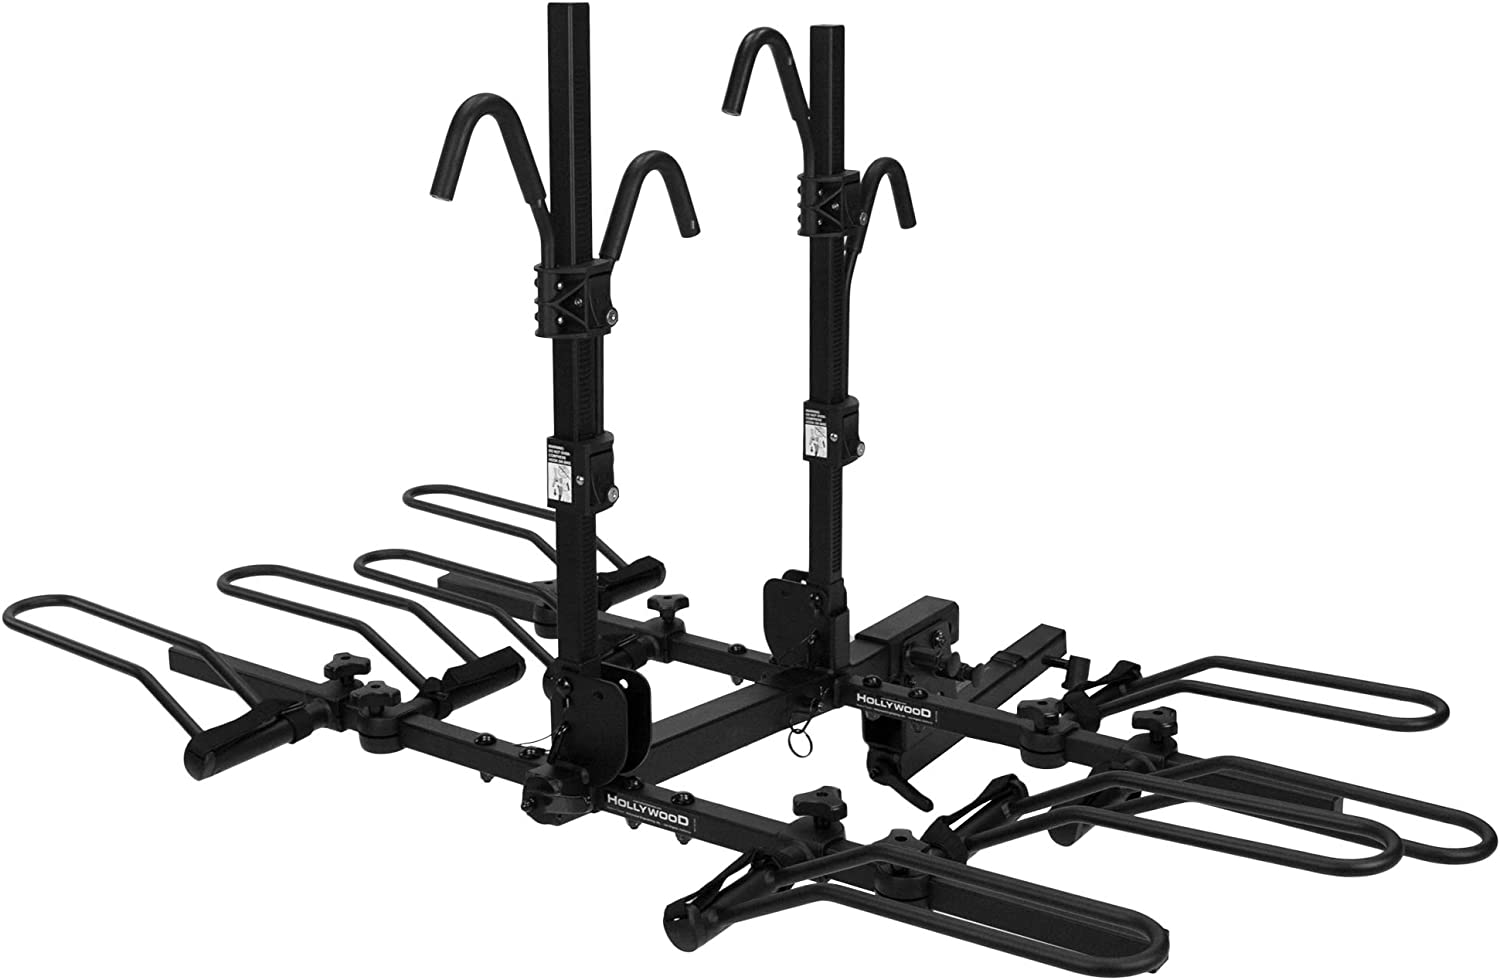 Hollywood Racks HR1400 Sport Rider SE 4-Bike Platform Style Hitch Mount Rack 2-Inch Receiver